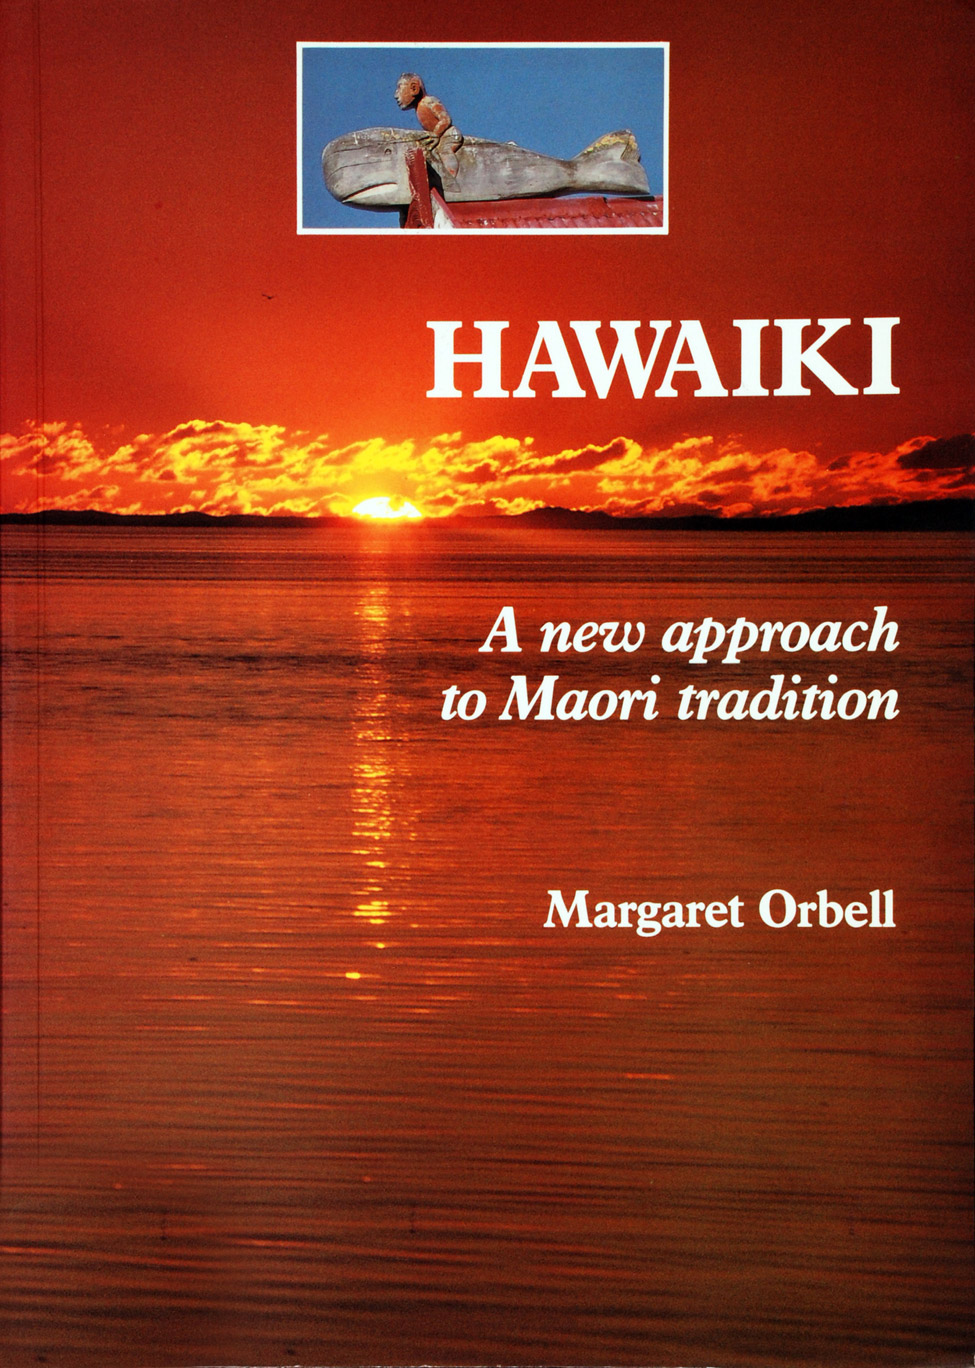 Margaret Orbell. <i>Hawaiki: A New Approach to Maori Tradition. </i> Christchurch: Canterbury University Press, 1991 edition.